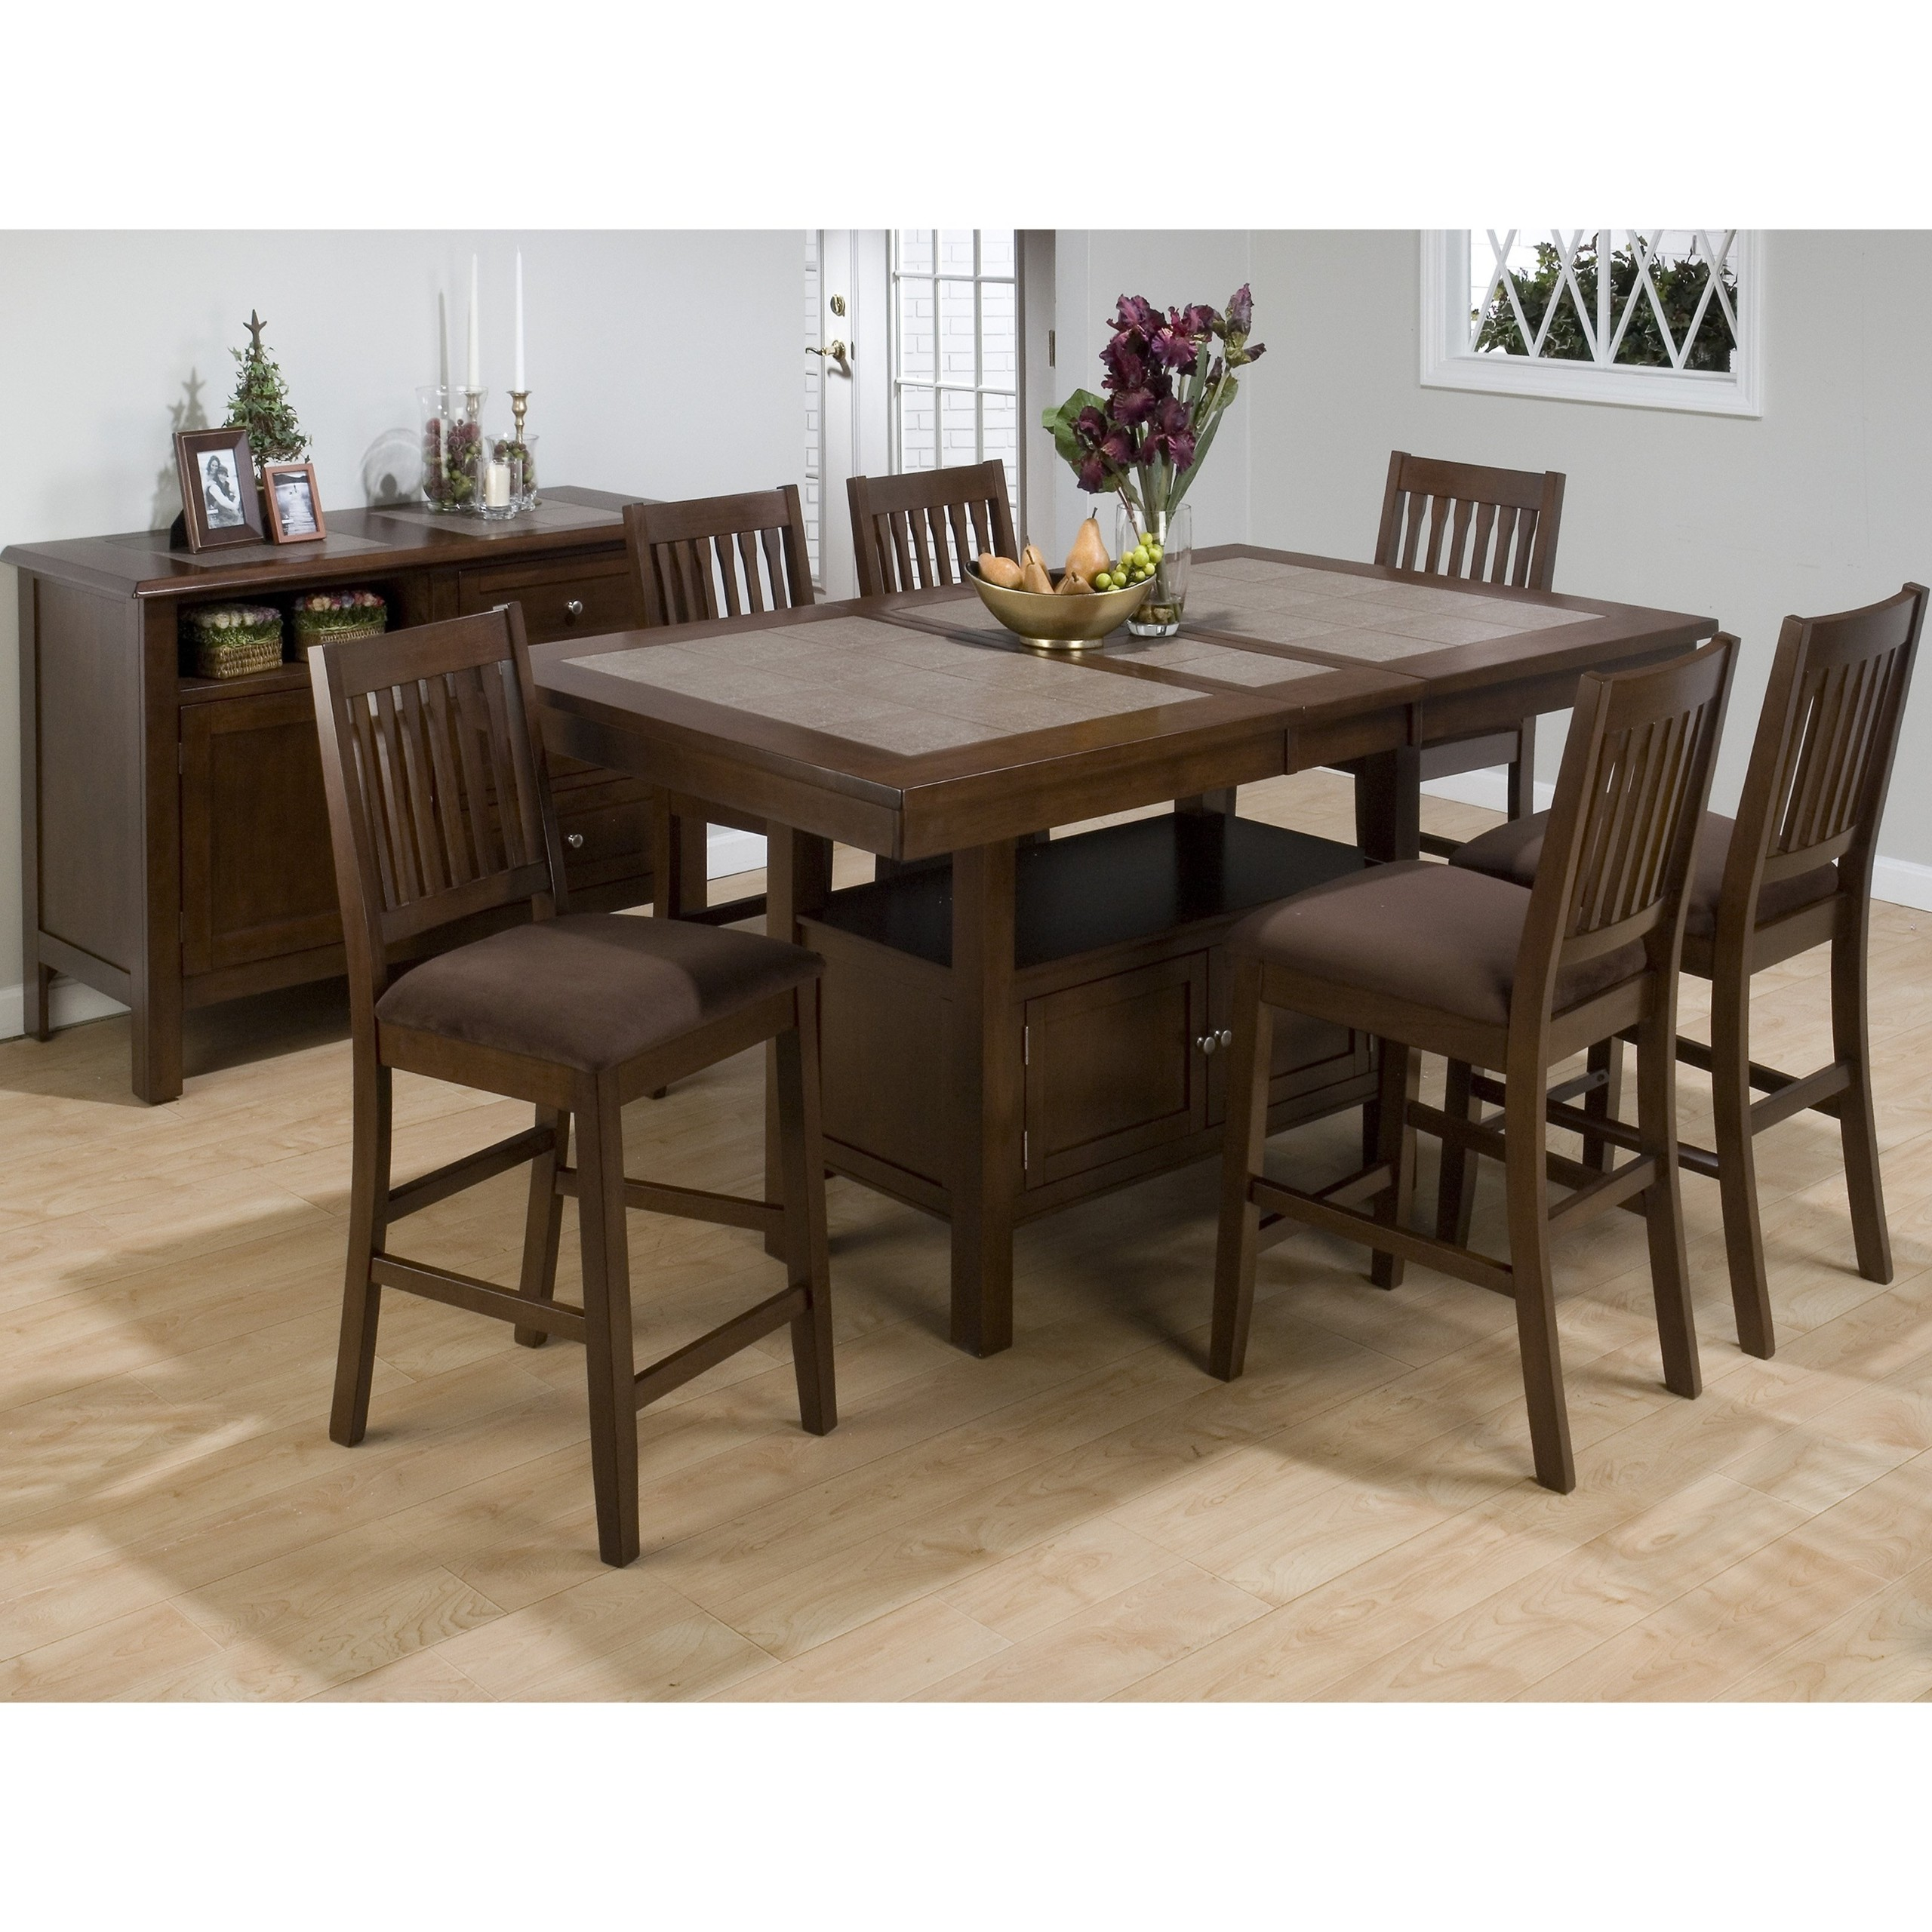 High Top Dining Table With Storage